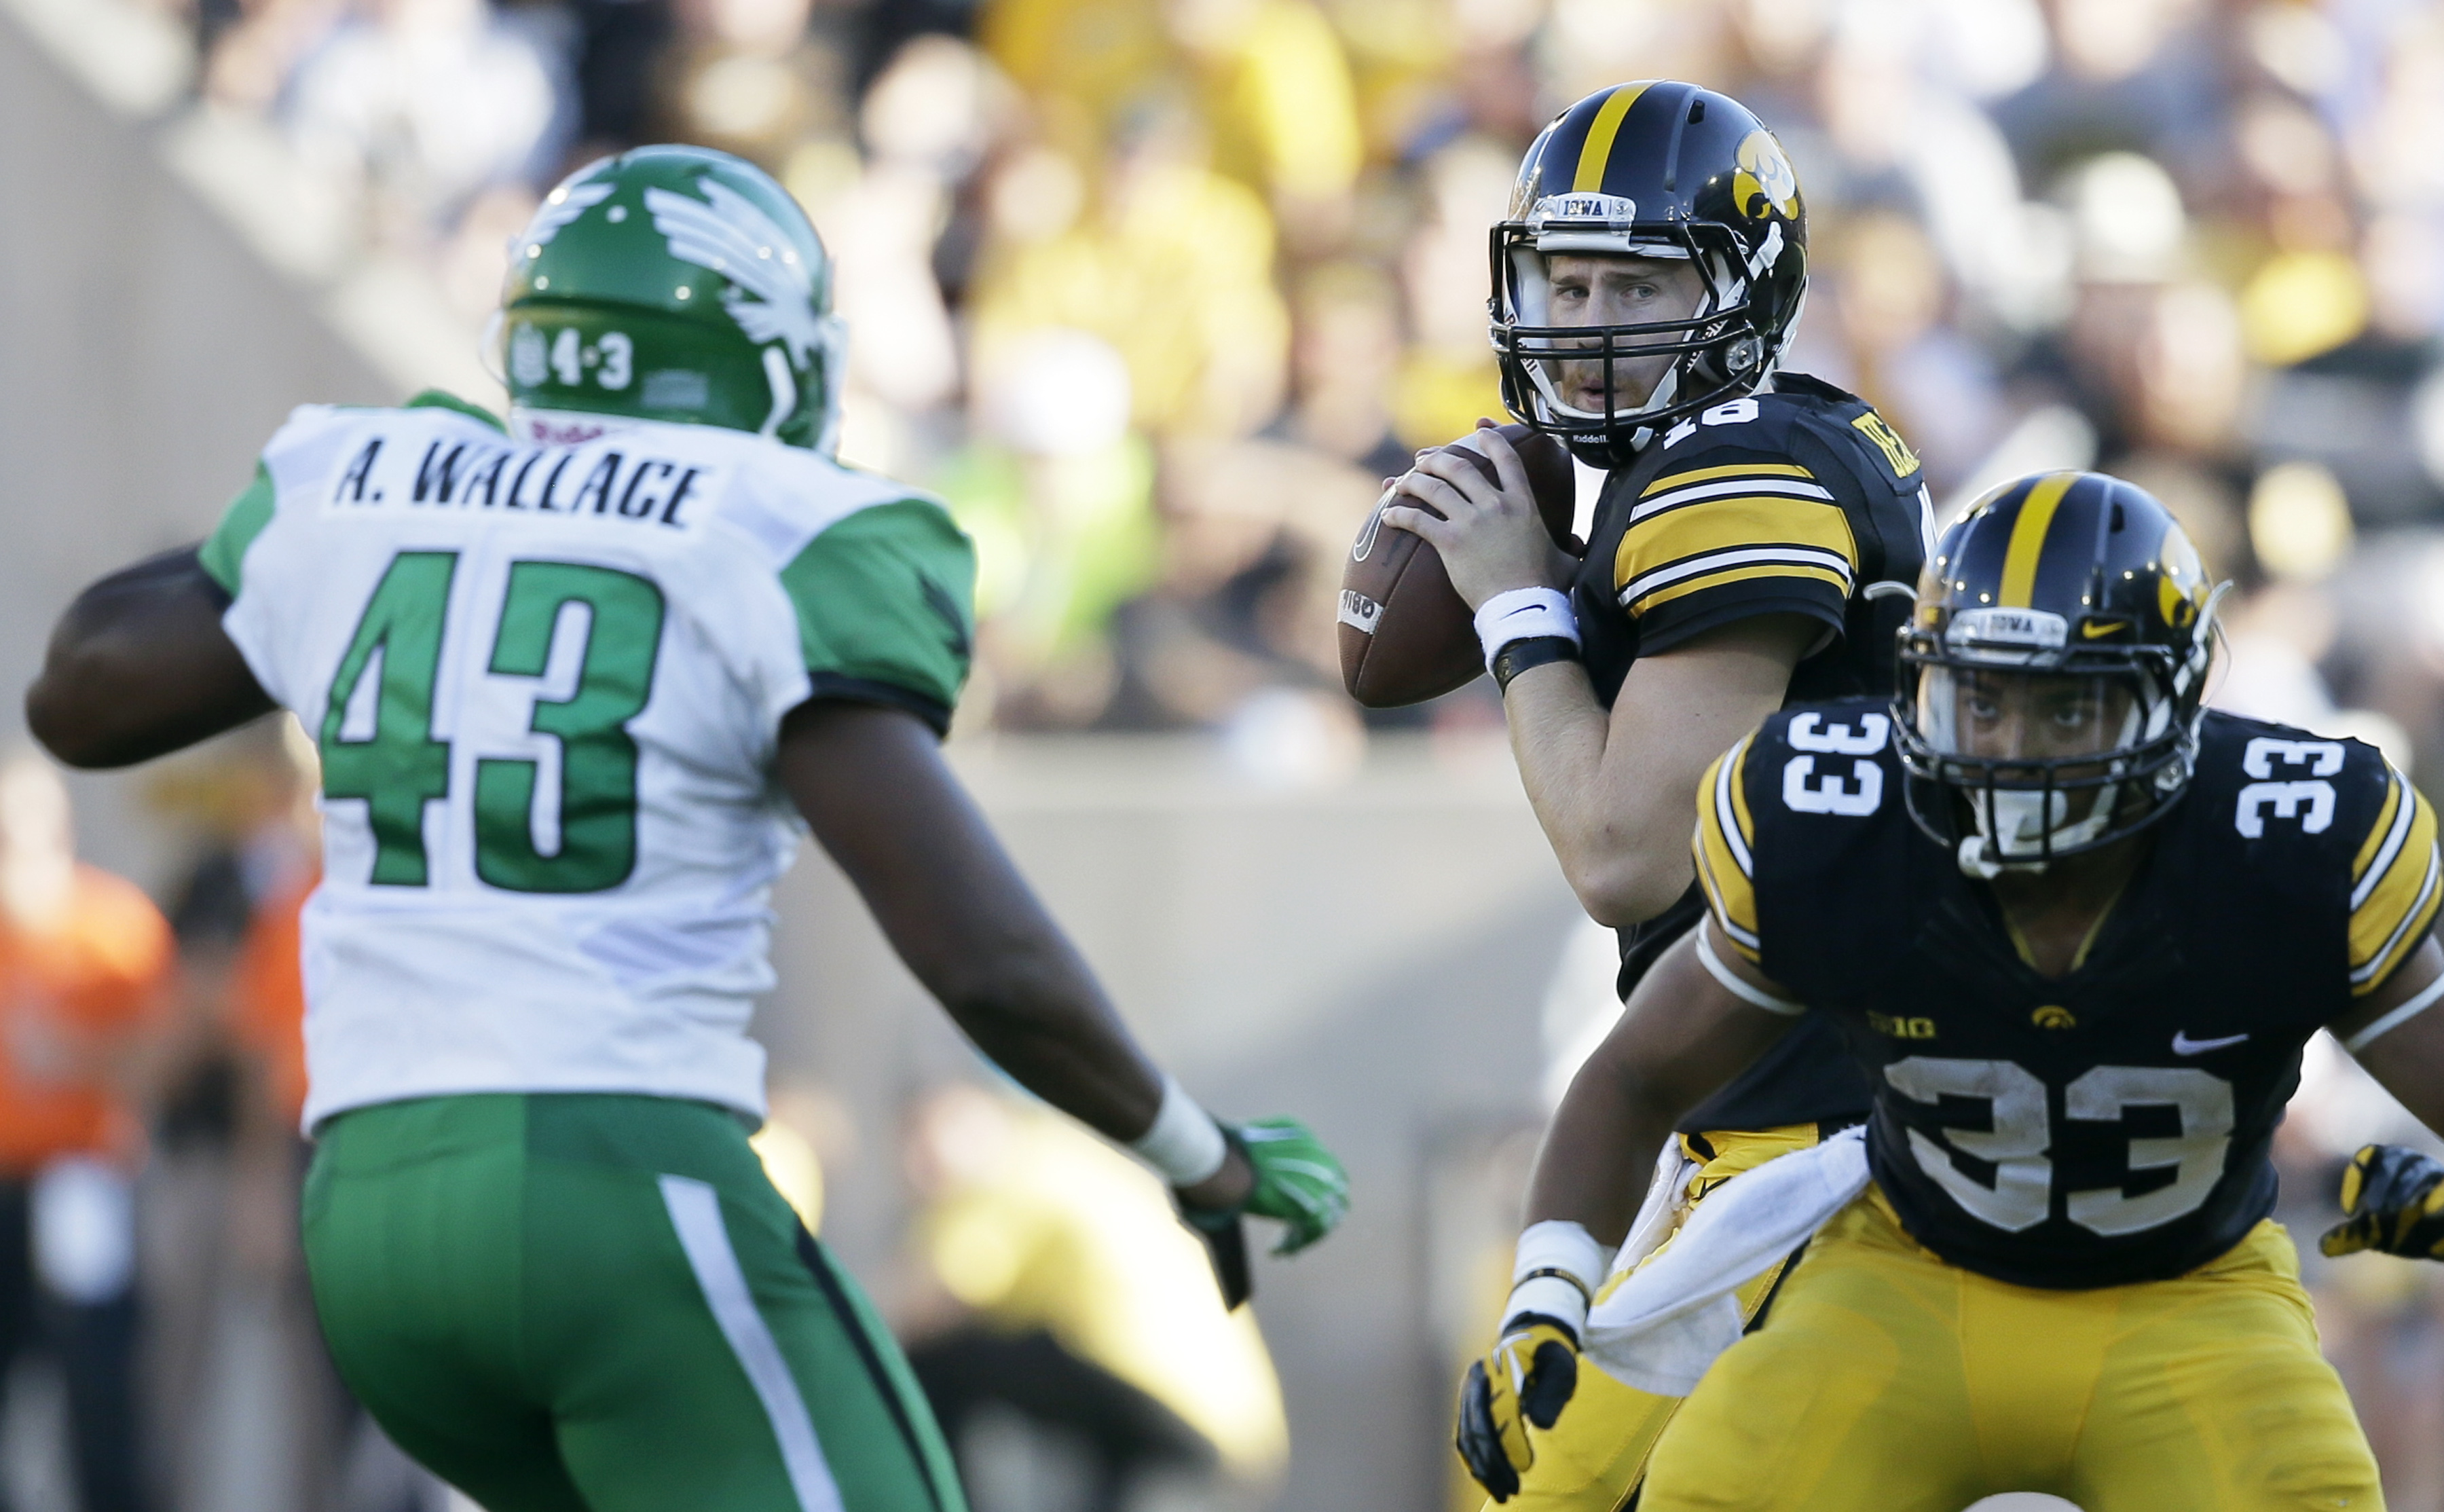 Iowa quarterback C.J. Beathard, center, looks to throw a pass as teammate Jordan Canzeri, right, blocks North Texas linebacker Anthony Wallace (43) during the second half of an NCAA college football game, Saturday, Sept. 26, 2015, in Iowa City, Iowa. Iowa